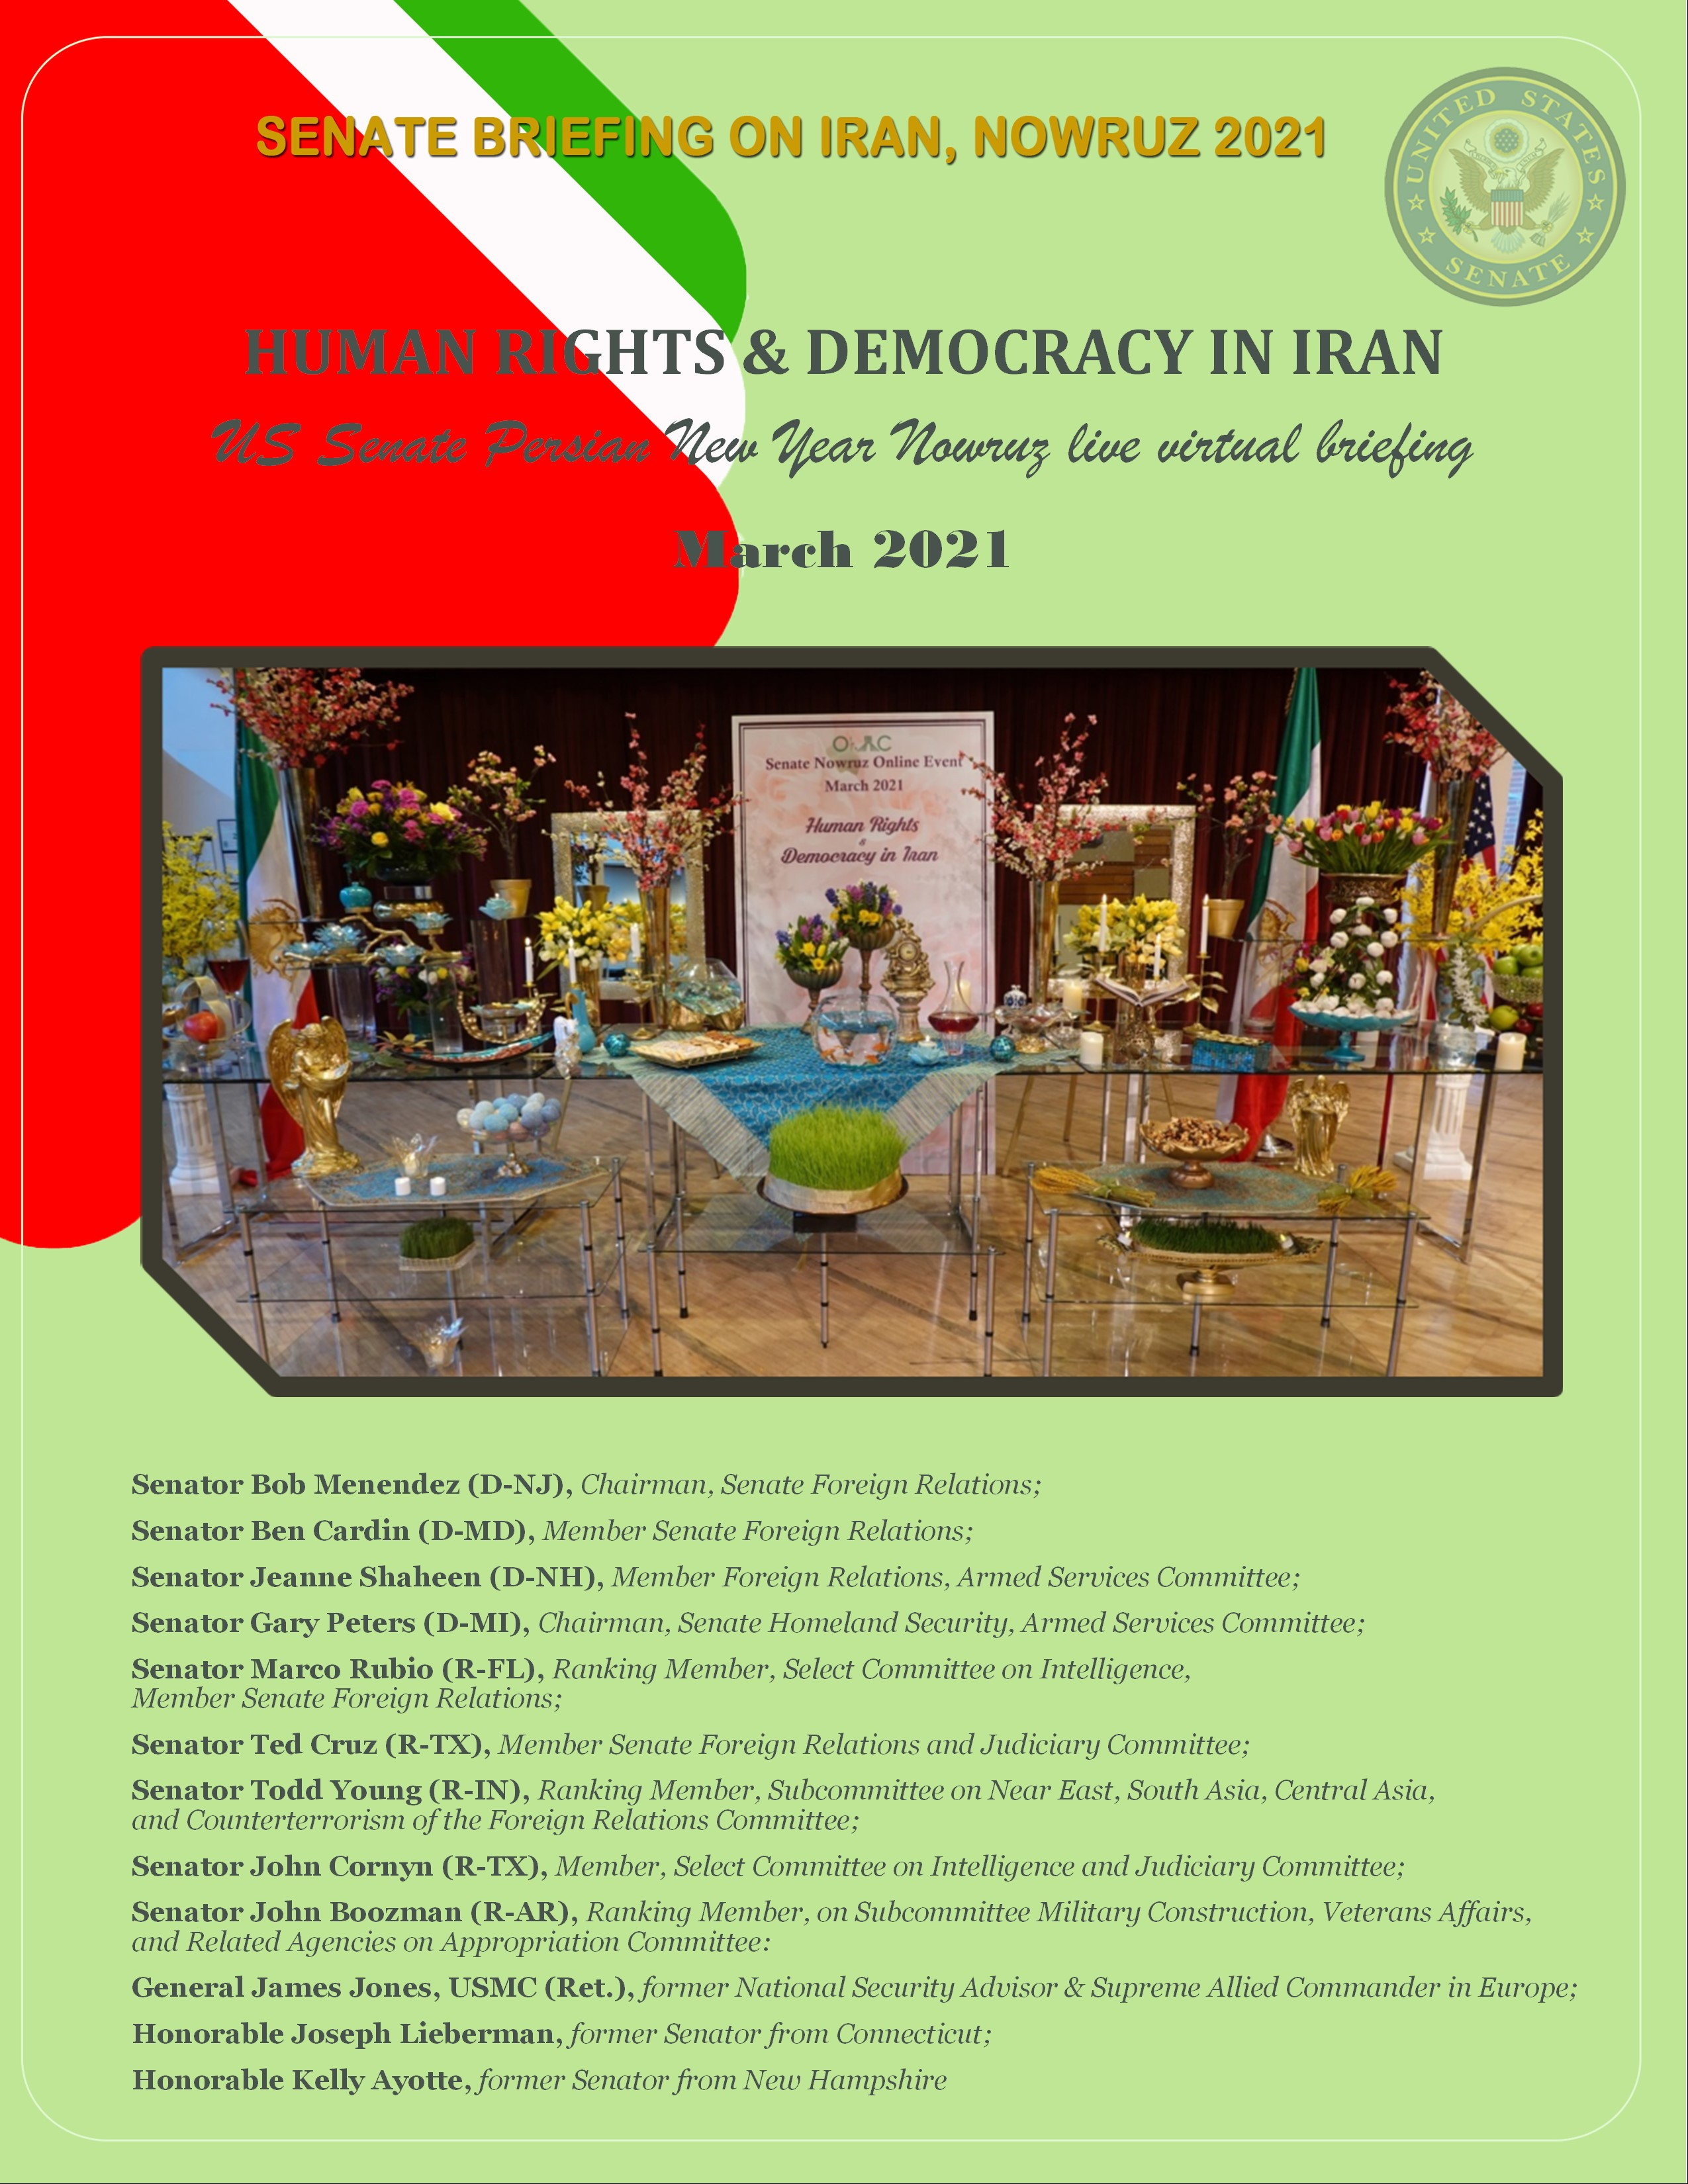 HUMAN RIGHTS & DEMOCRACY IN IRAN US Senate Persian New Year Nowruz live virtual briefing March 2021